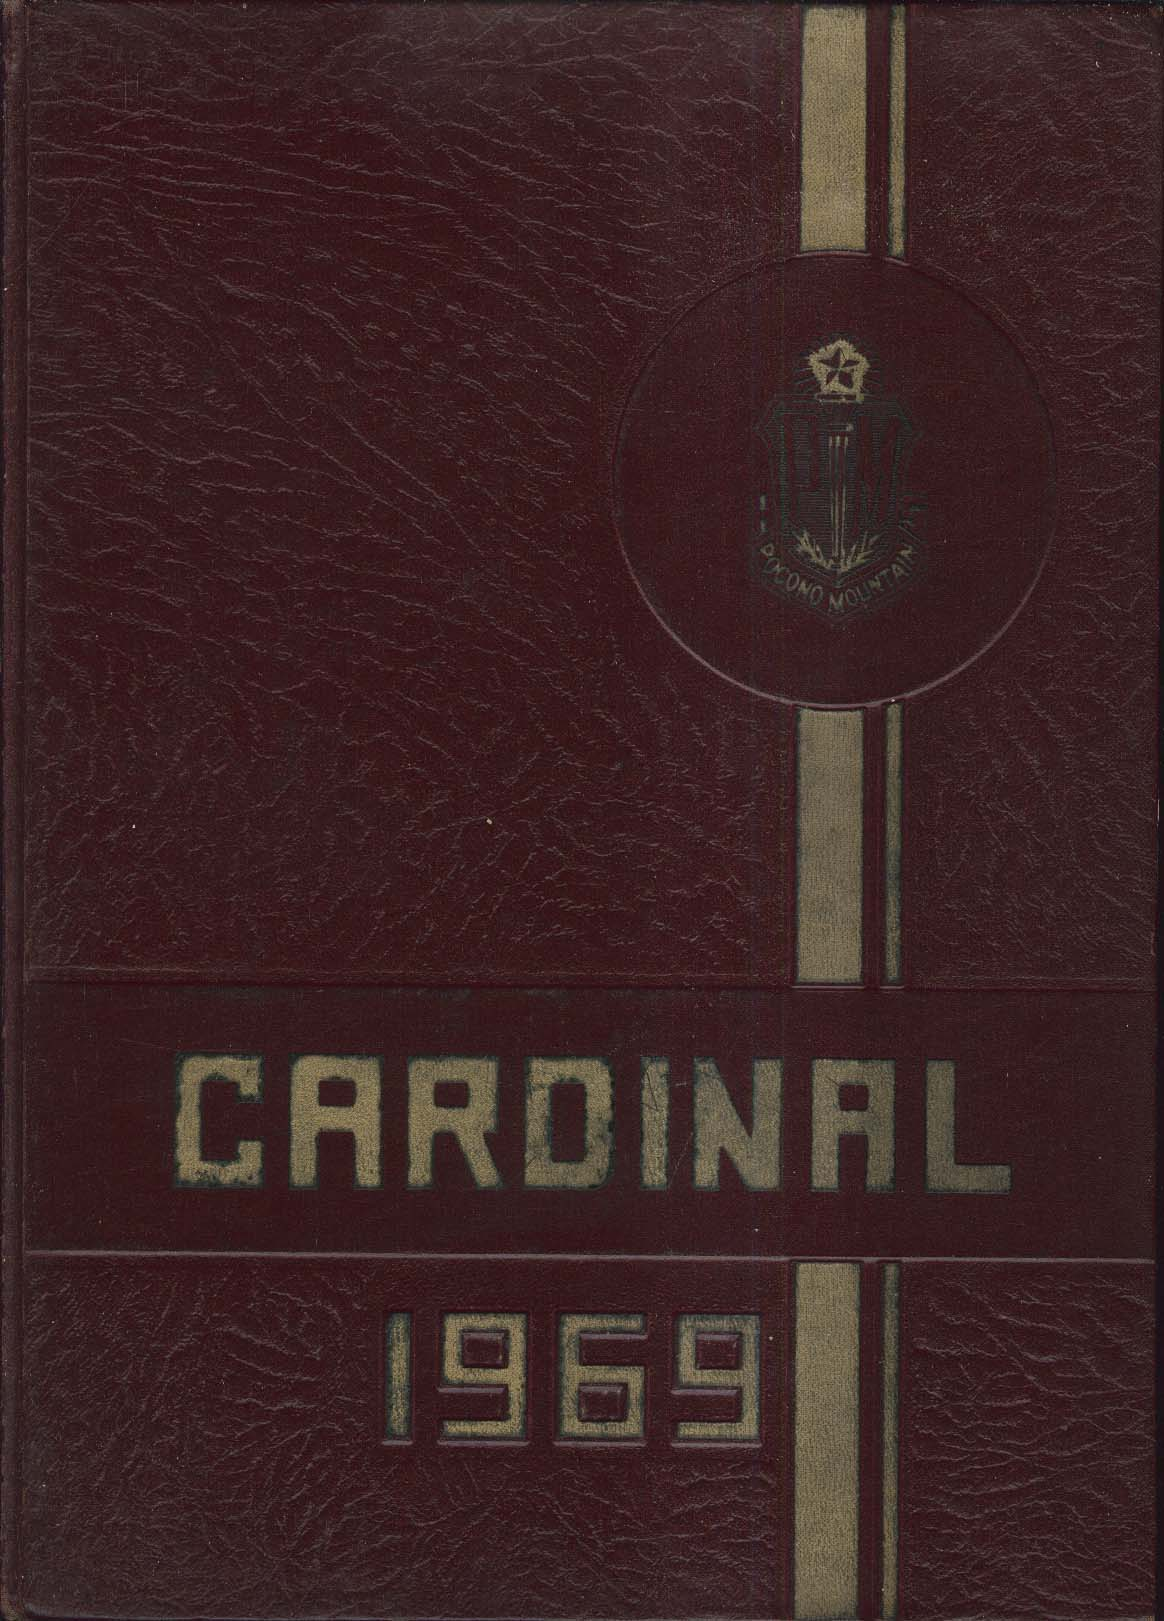 Image for Cardinal 1969 Pocono Mountain High School Swiftwater Pennsylvania PA Yearbook